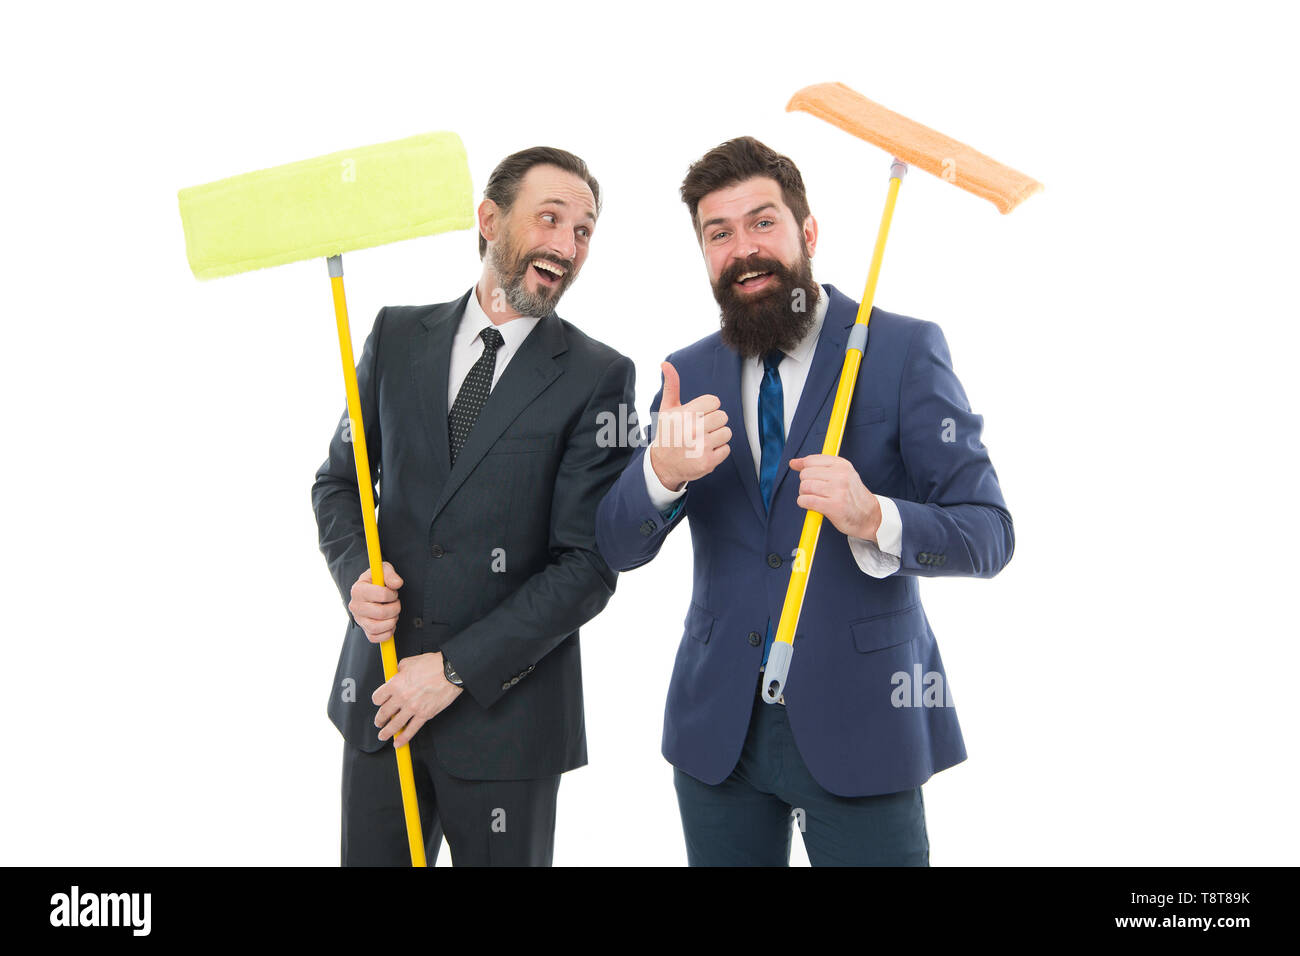 Big cleaning day. Cleaning business. Household duties. Cleaning service concept. Cover our tracks before someone find out financial fraud. Clear reputation. Bearded men formal suits hold mops. - Stock Image